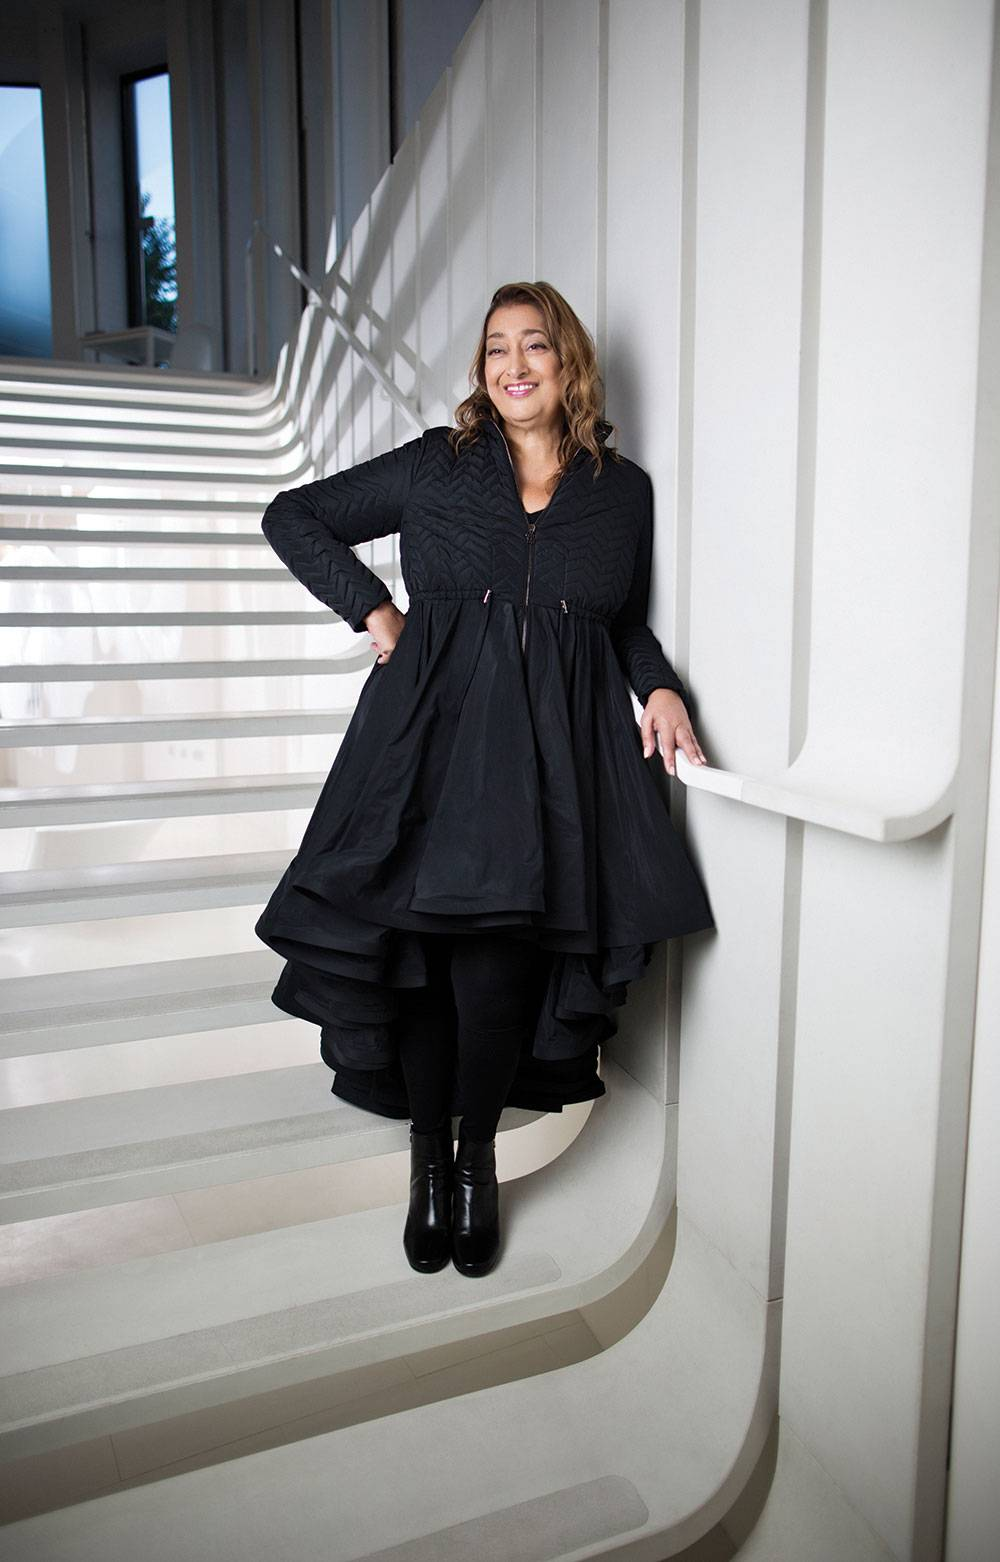 zaha hadid the world s brightest architecture star lights up miami. Black Bedroom Furniture Sets. Home Design Ideas